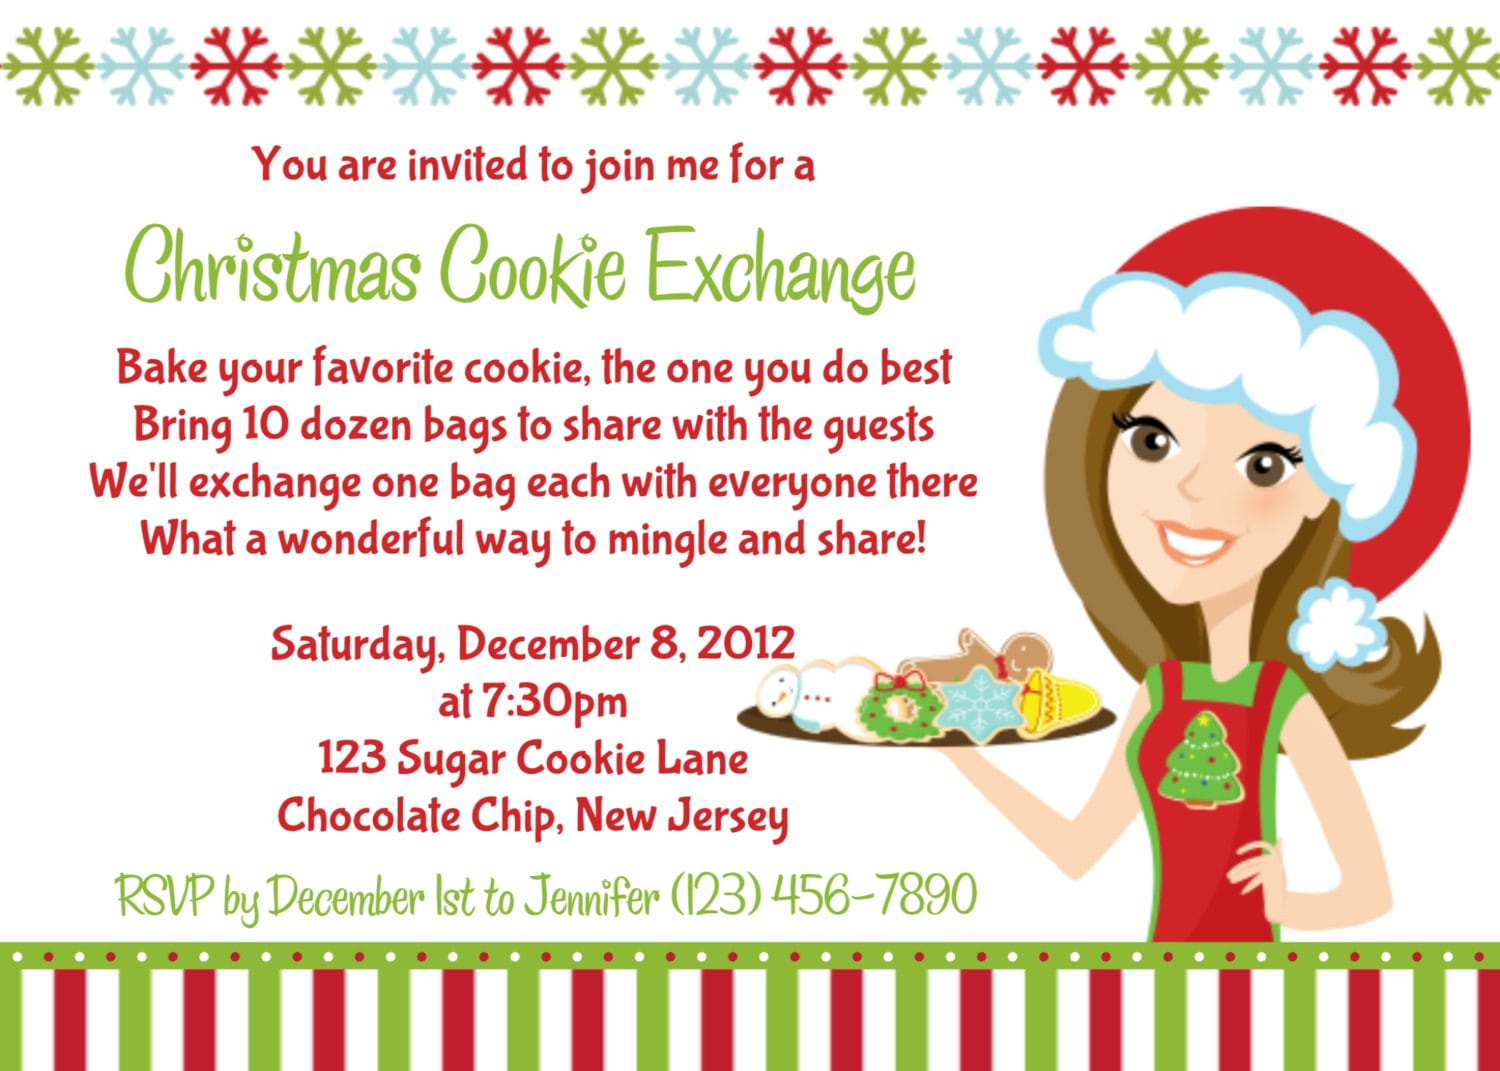 Christmas Cookie Swap Invitations   Telefora Coupons